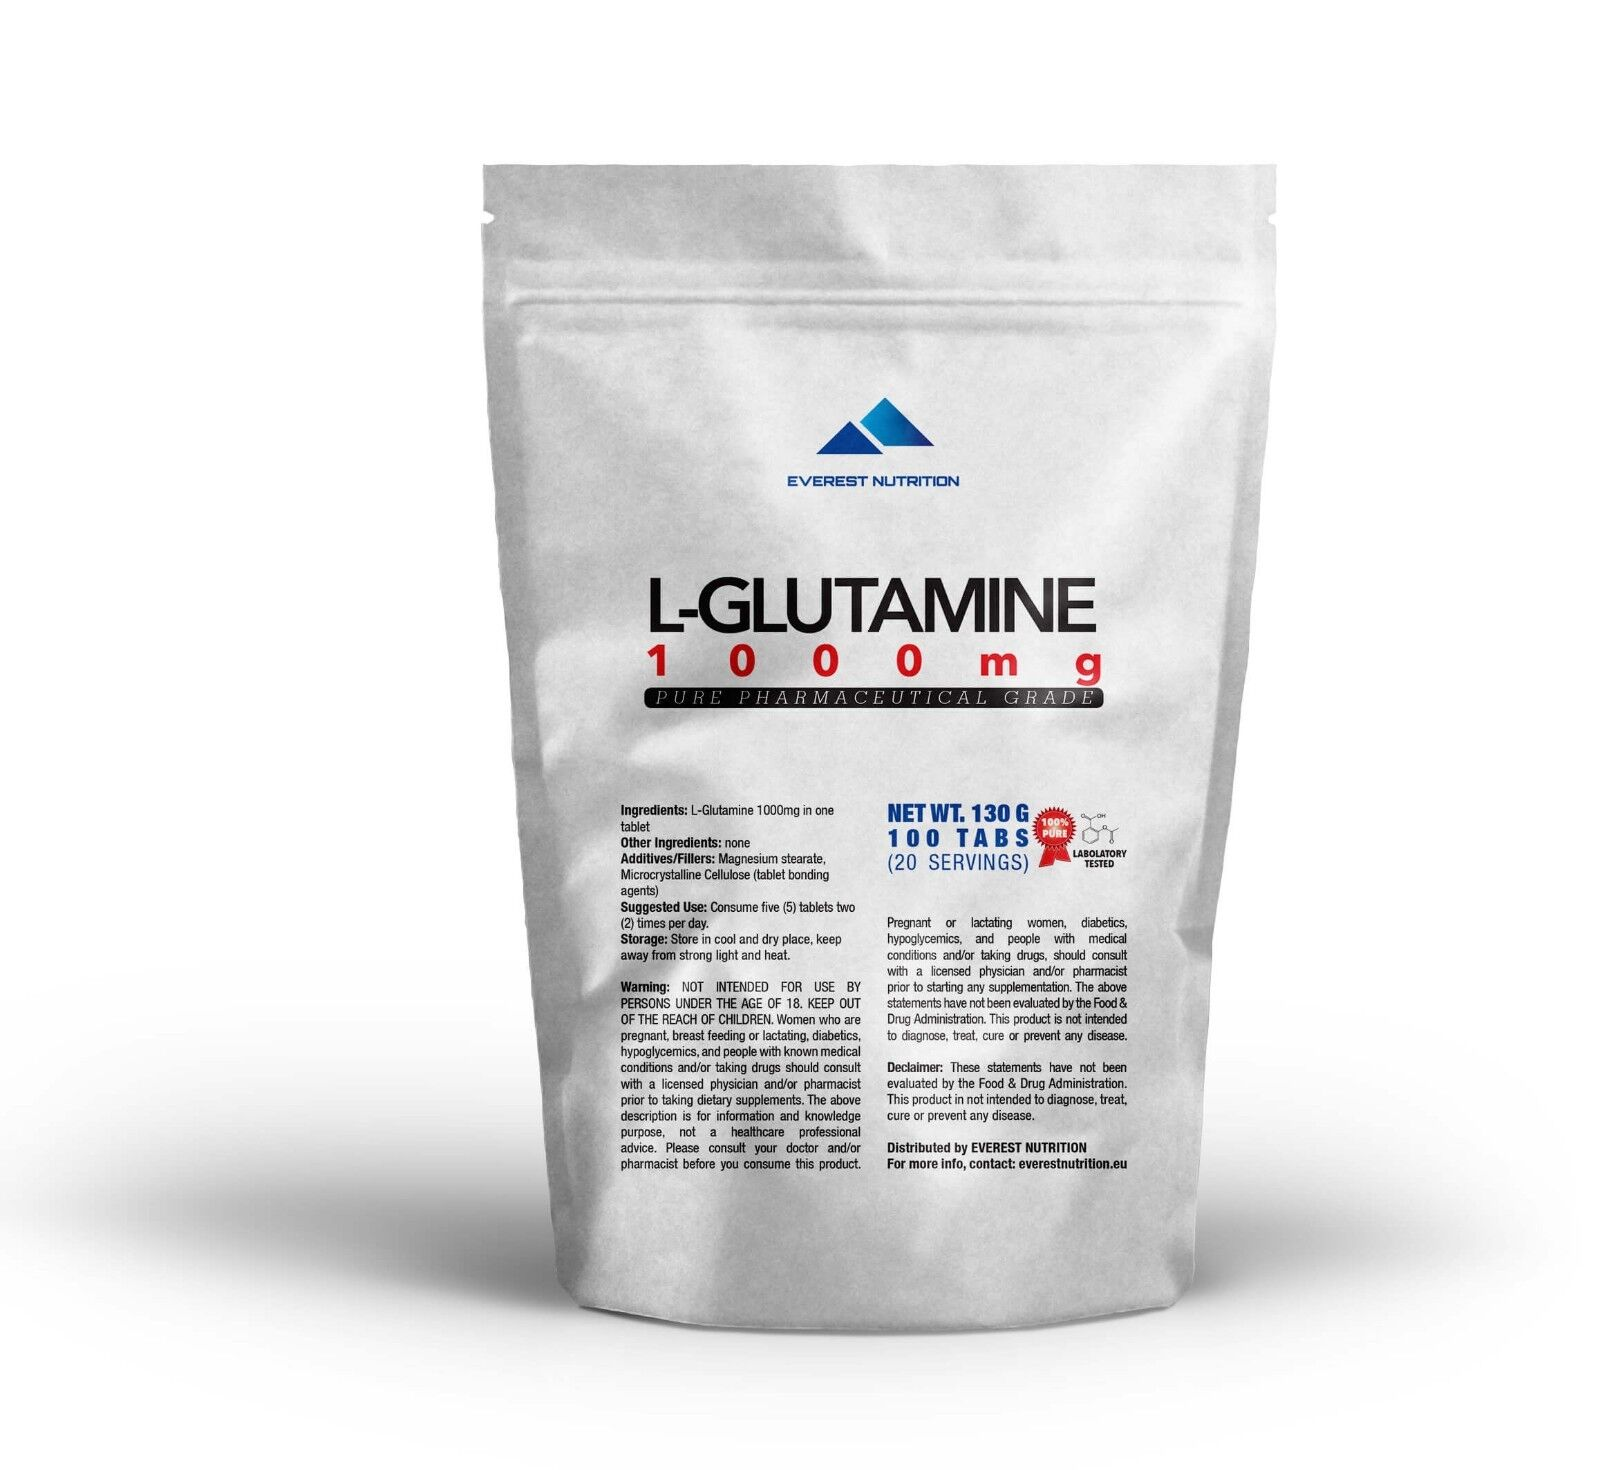 GLUTAMINE 1000 mg TABLETS PURE PHARMACEUTICAL QUALITY ANTICATABOLIC, LEAN MUSCLE